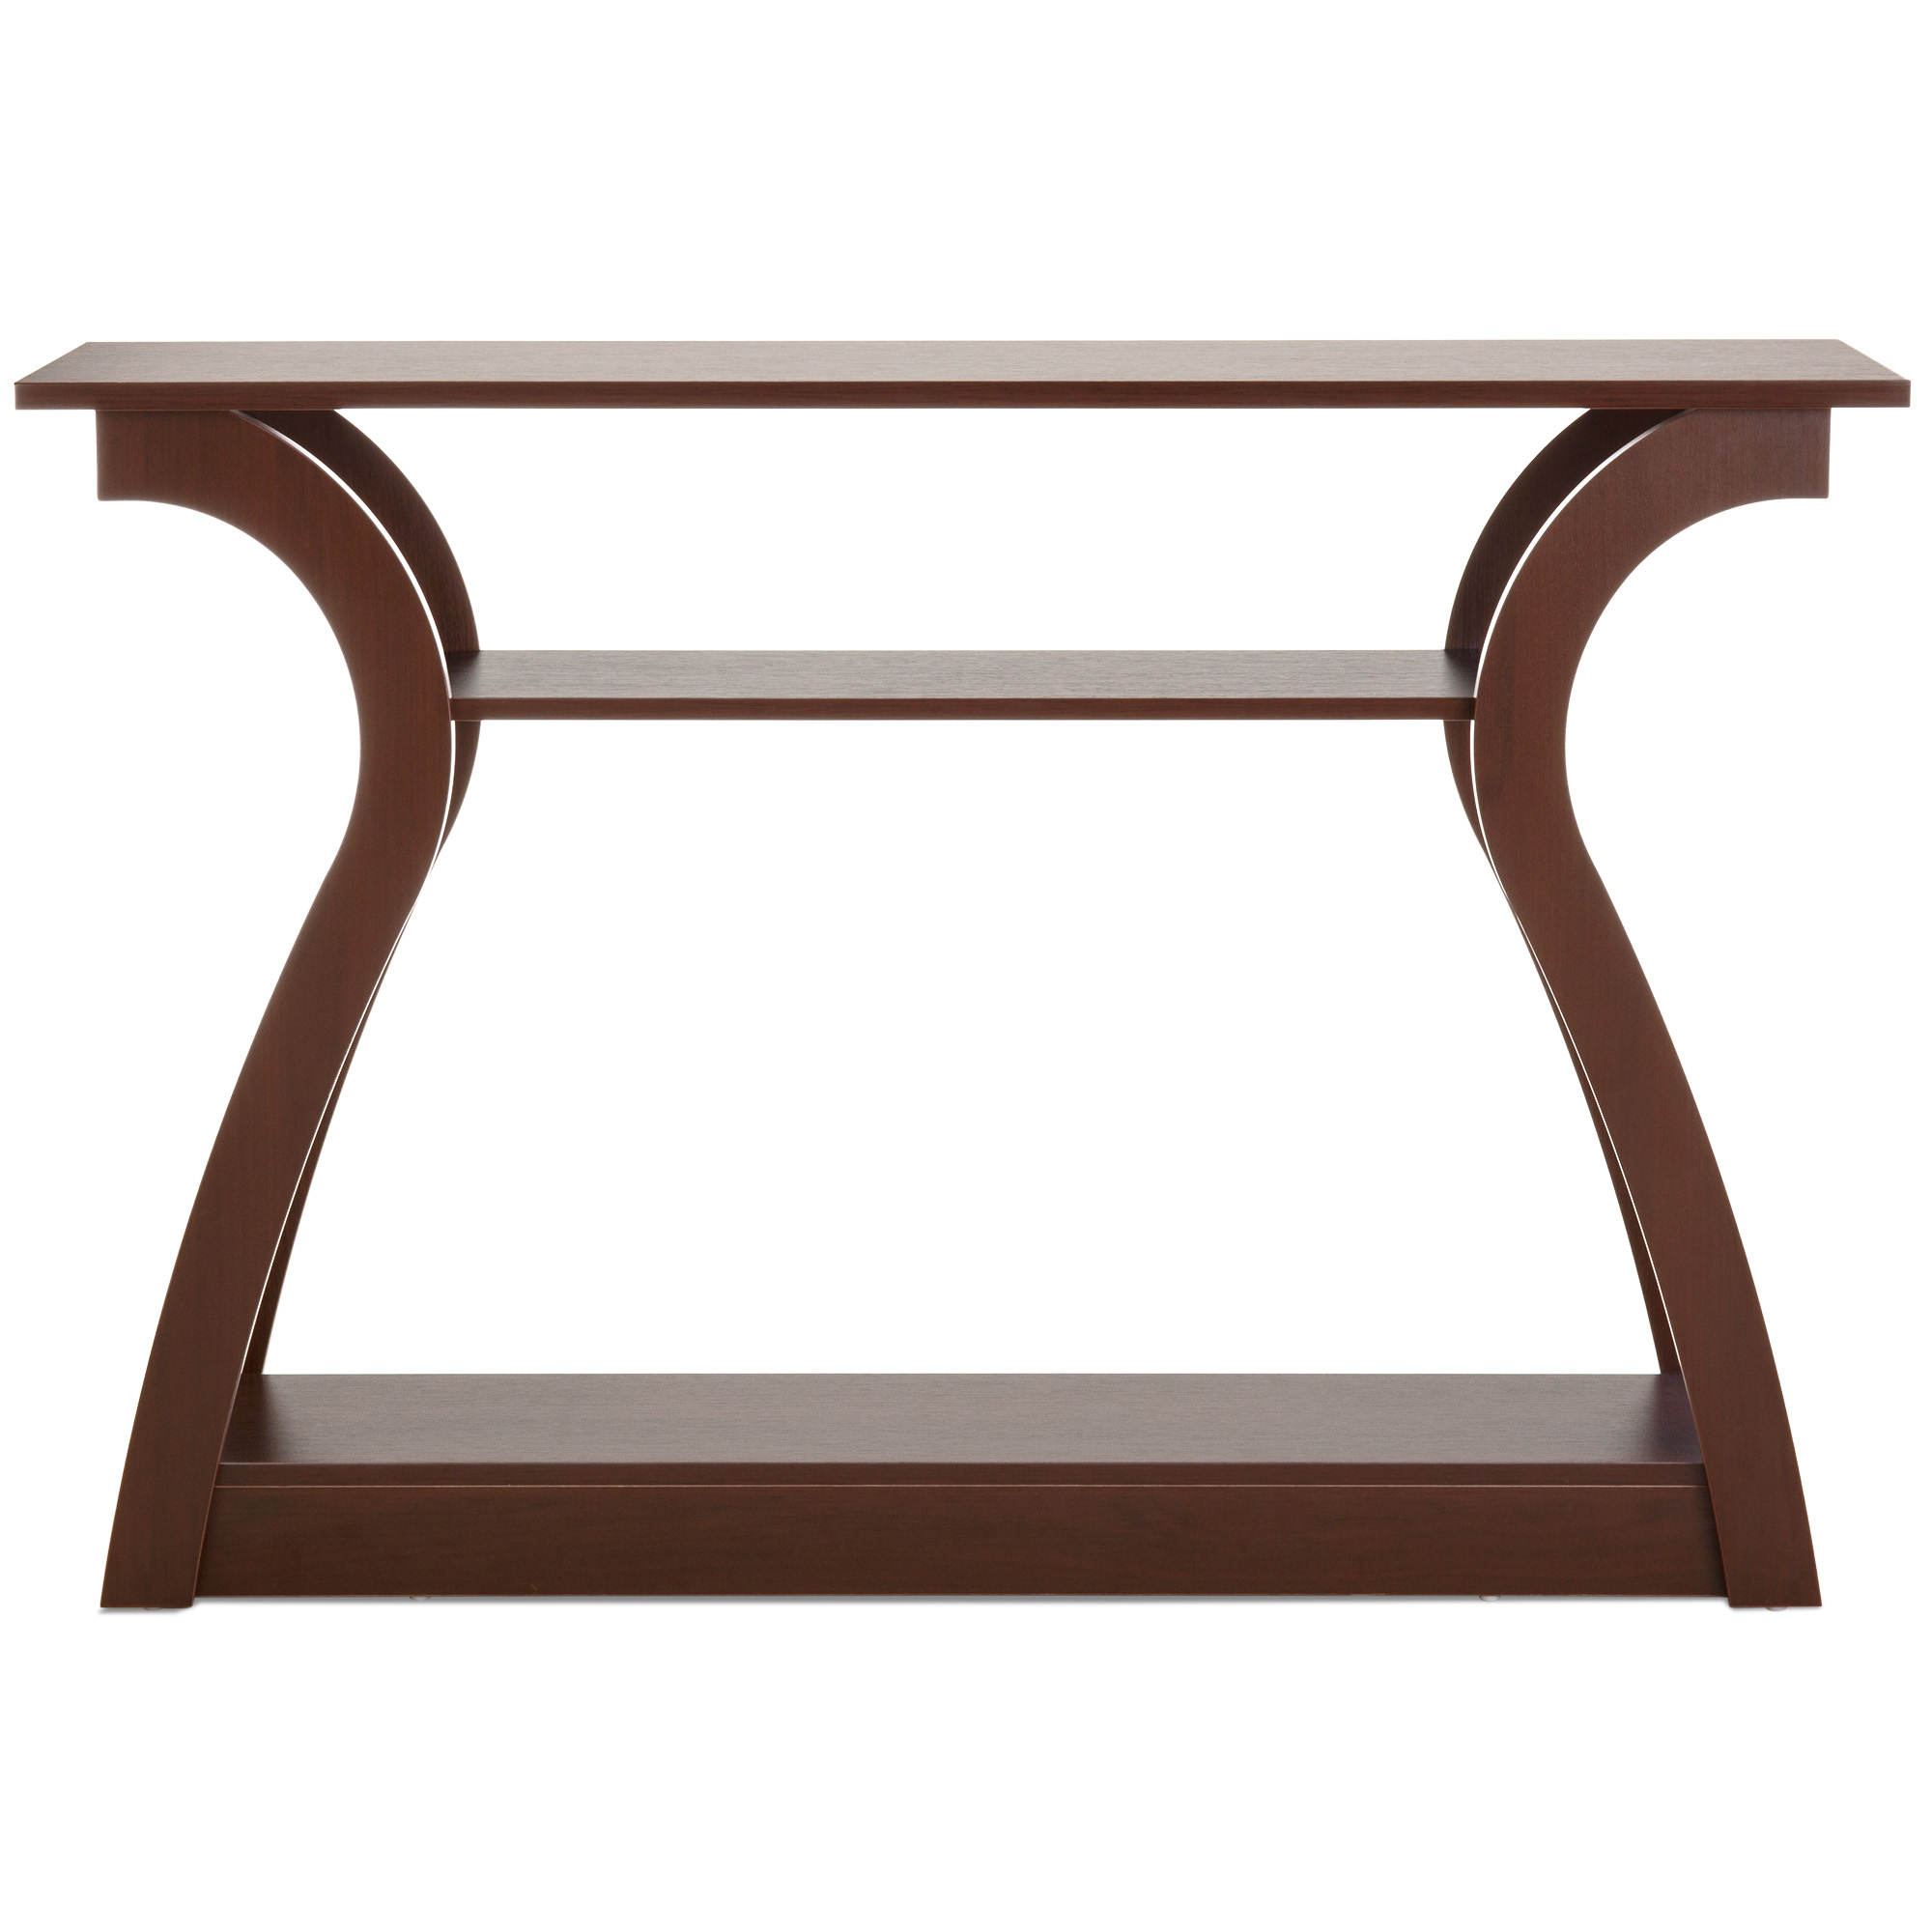 Best Choice Products 47in 3 Shelf Modern Decorative Console Accent Table  Furniture For Entryway,